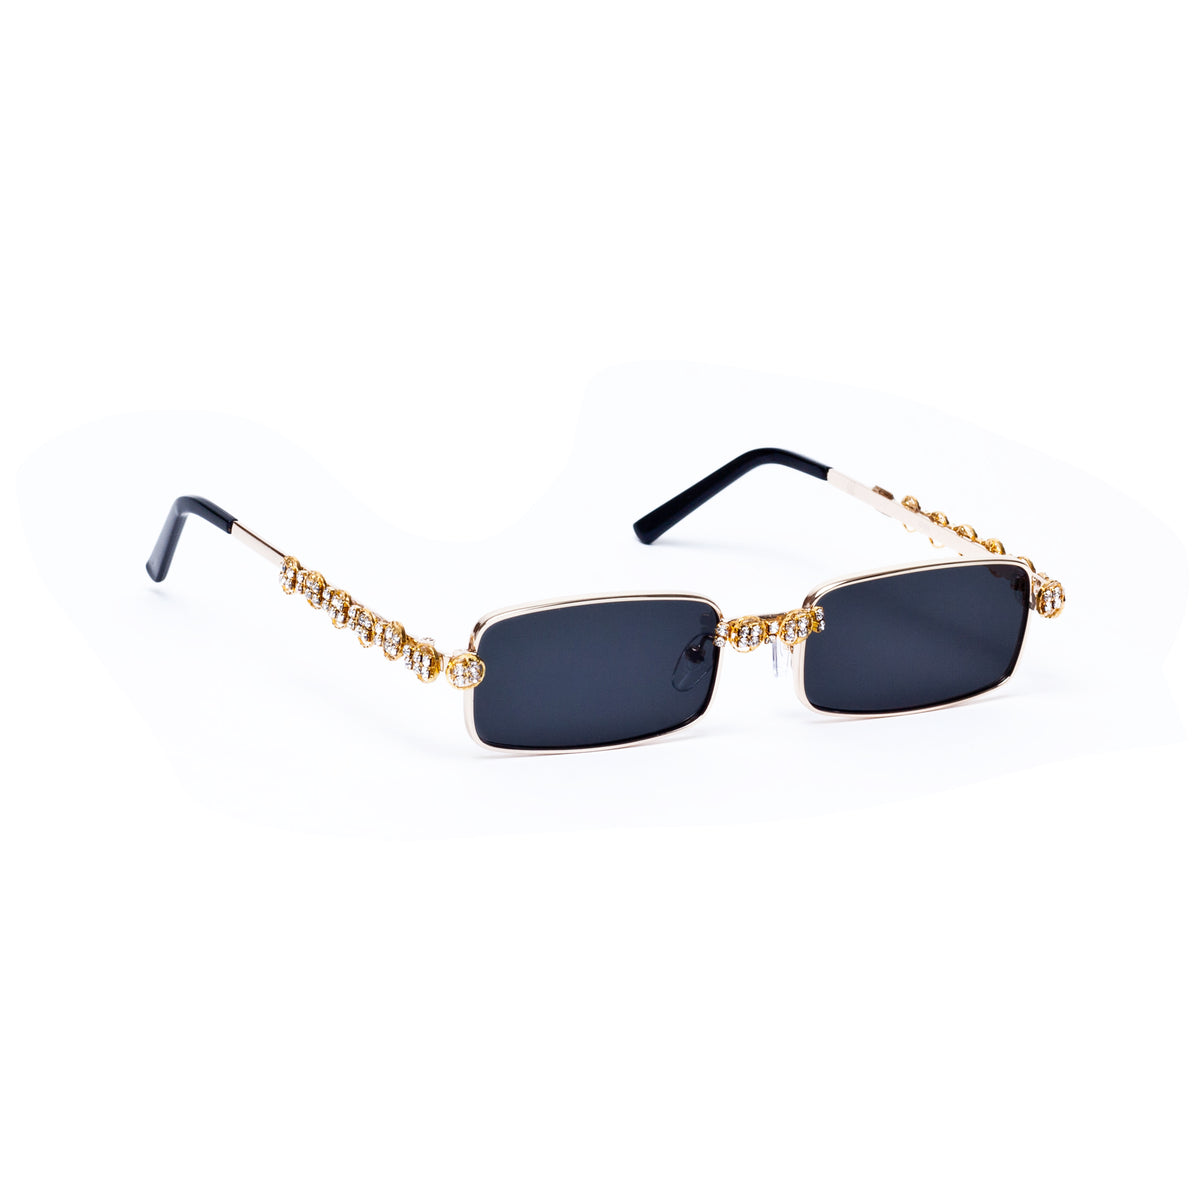 All About The Benjamins - Jet Luxe  SUNNIES + OPTICS Sunglasses Collection- NRODA